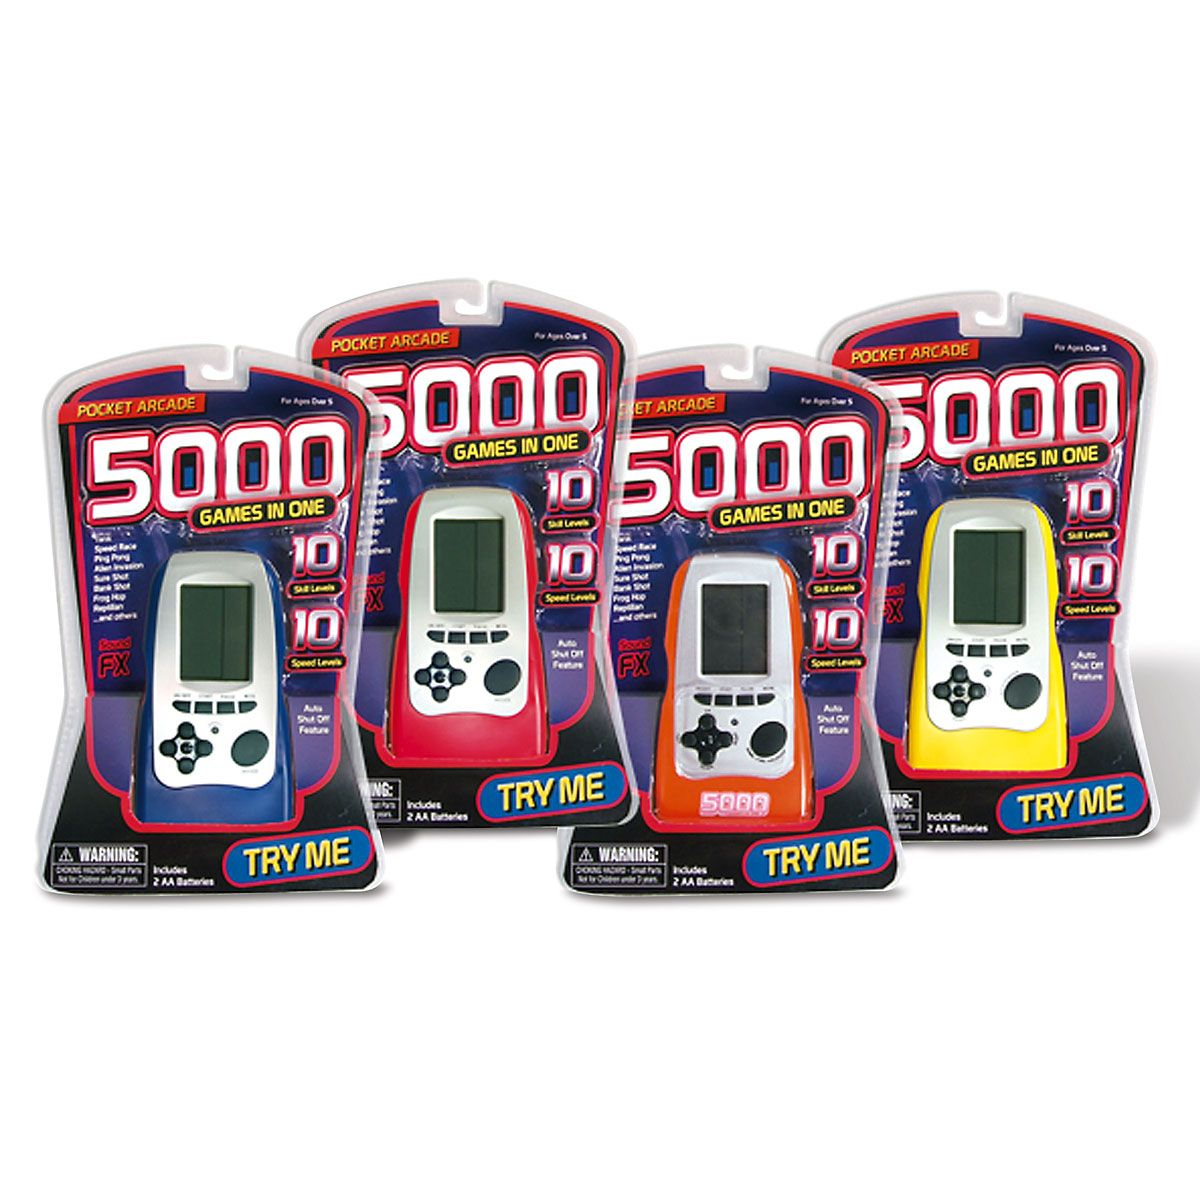 Handheld 5000 Games in One